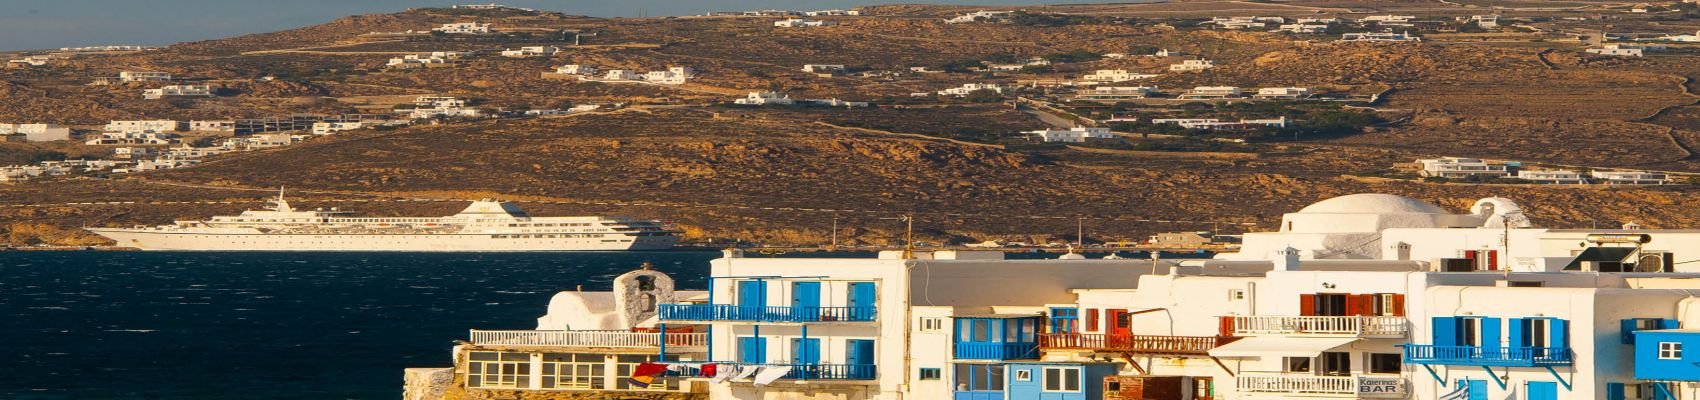 http://www.cruiseselect.co.uk/application/files/thumbnails/featured/3314/6917/6903/aegean_odyssey_in_mykonos.jpg